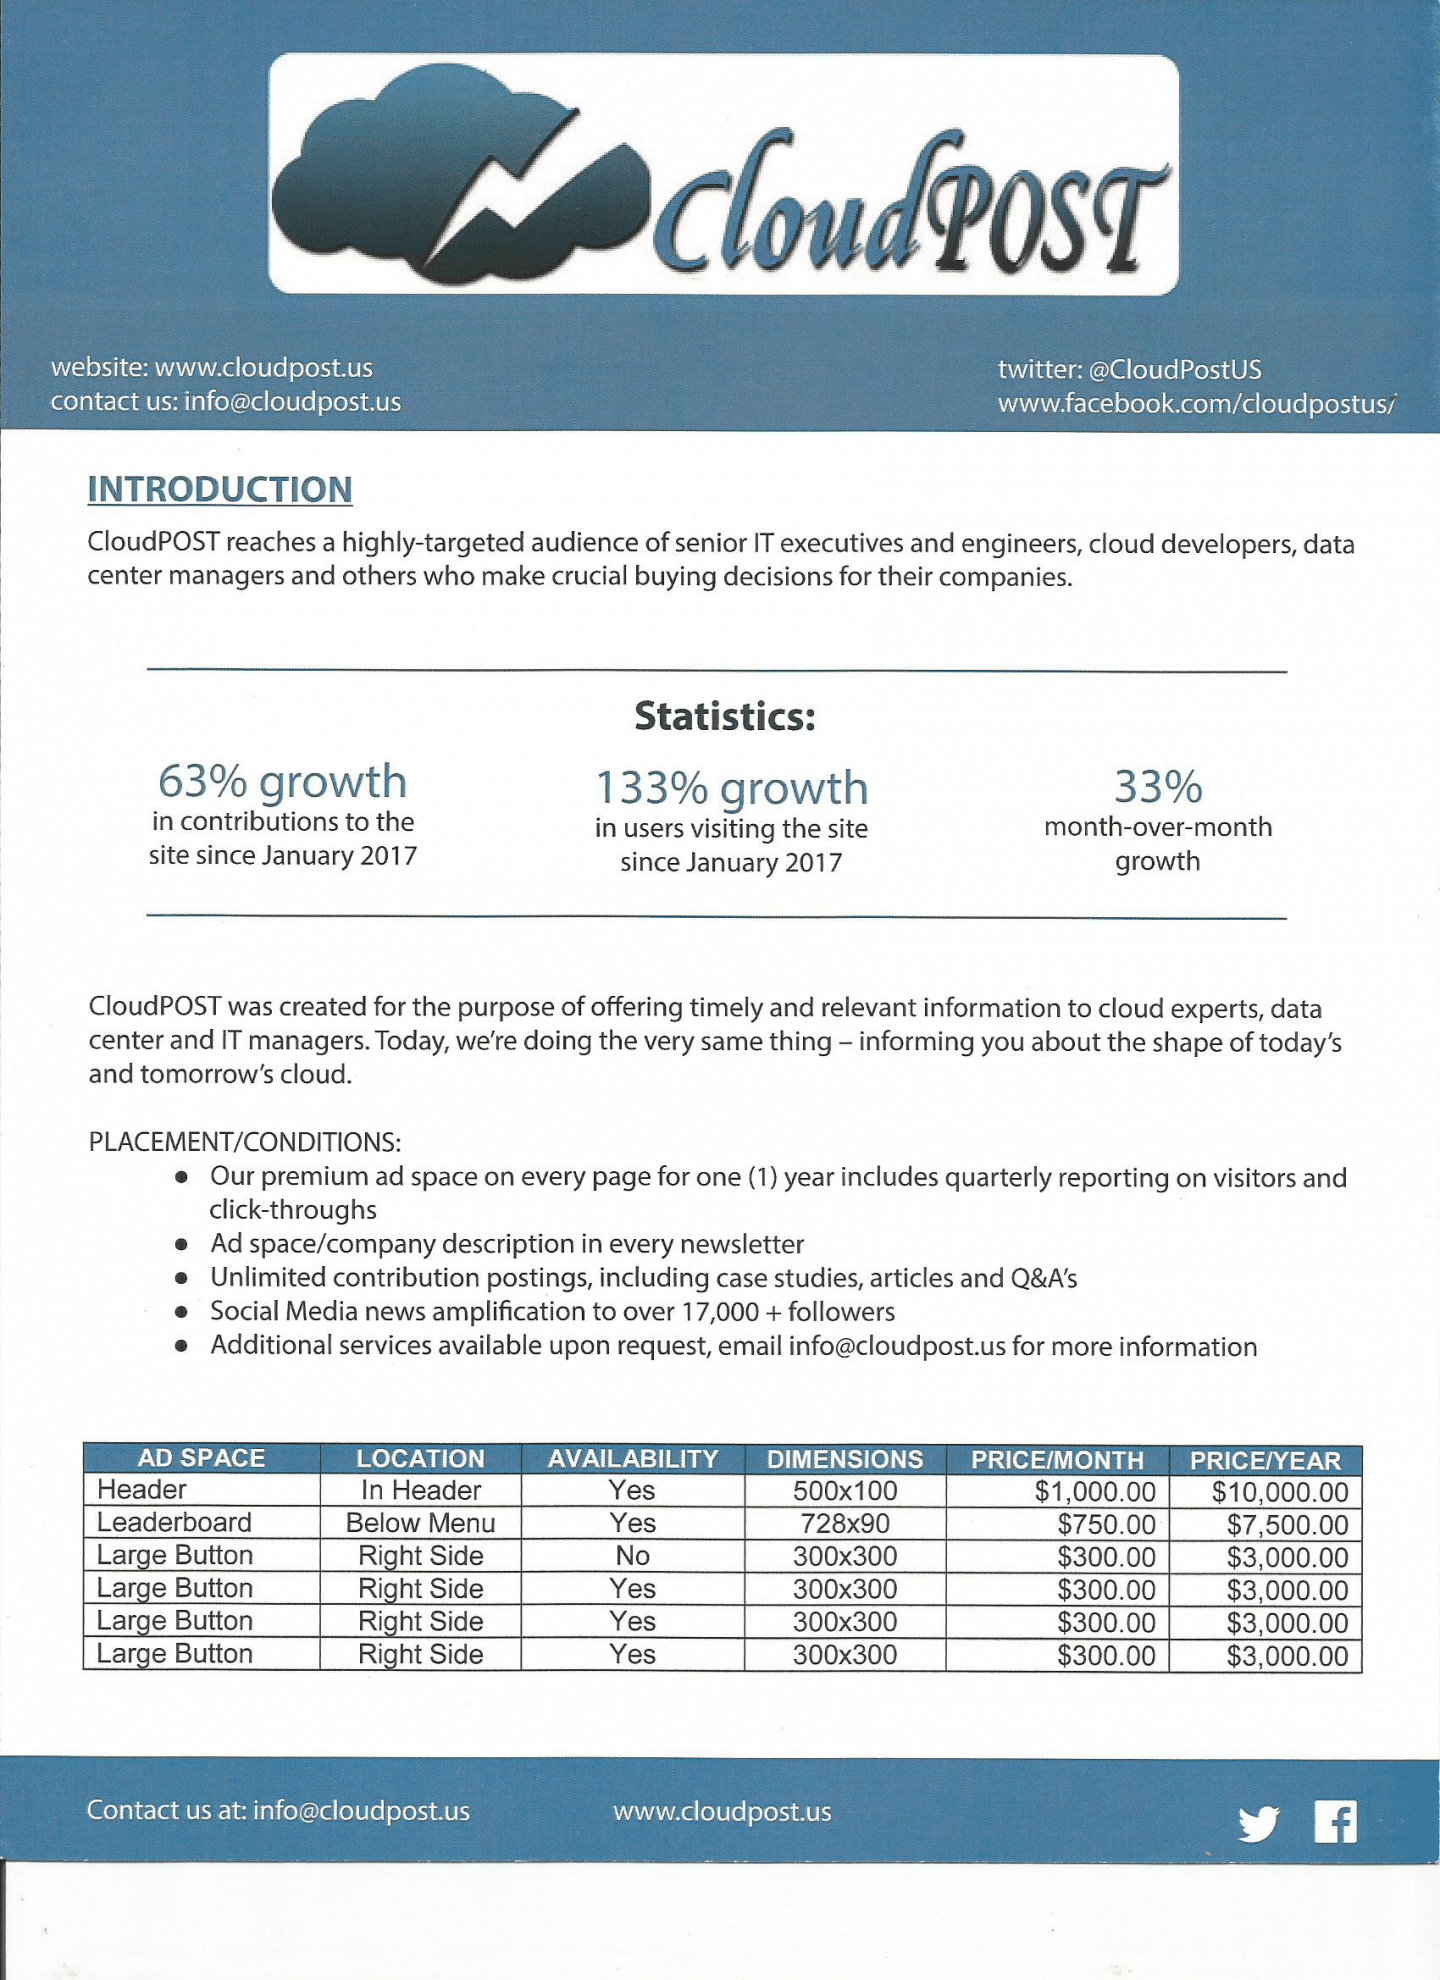 CloudPOST Advertising Page 1